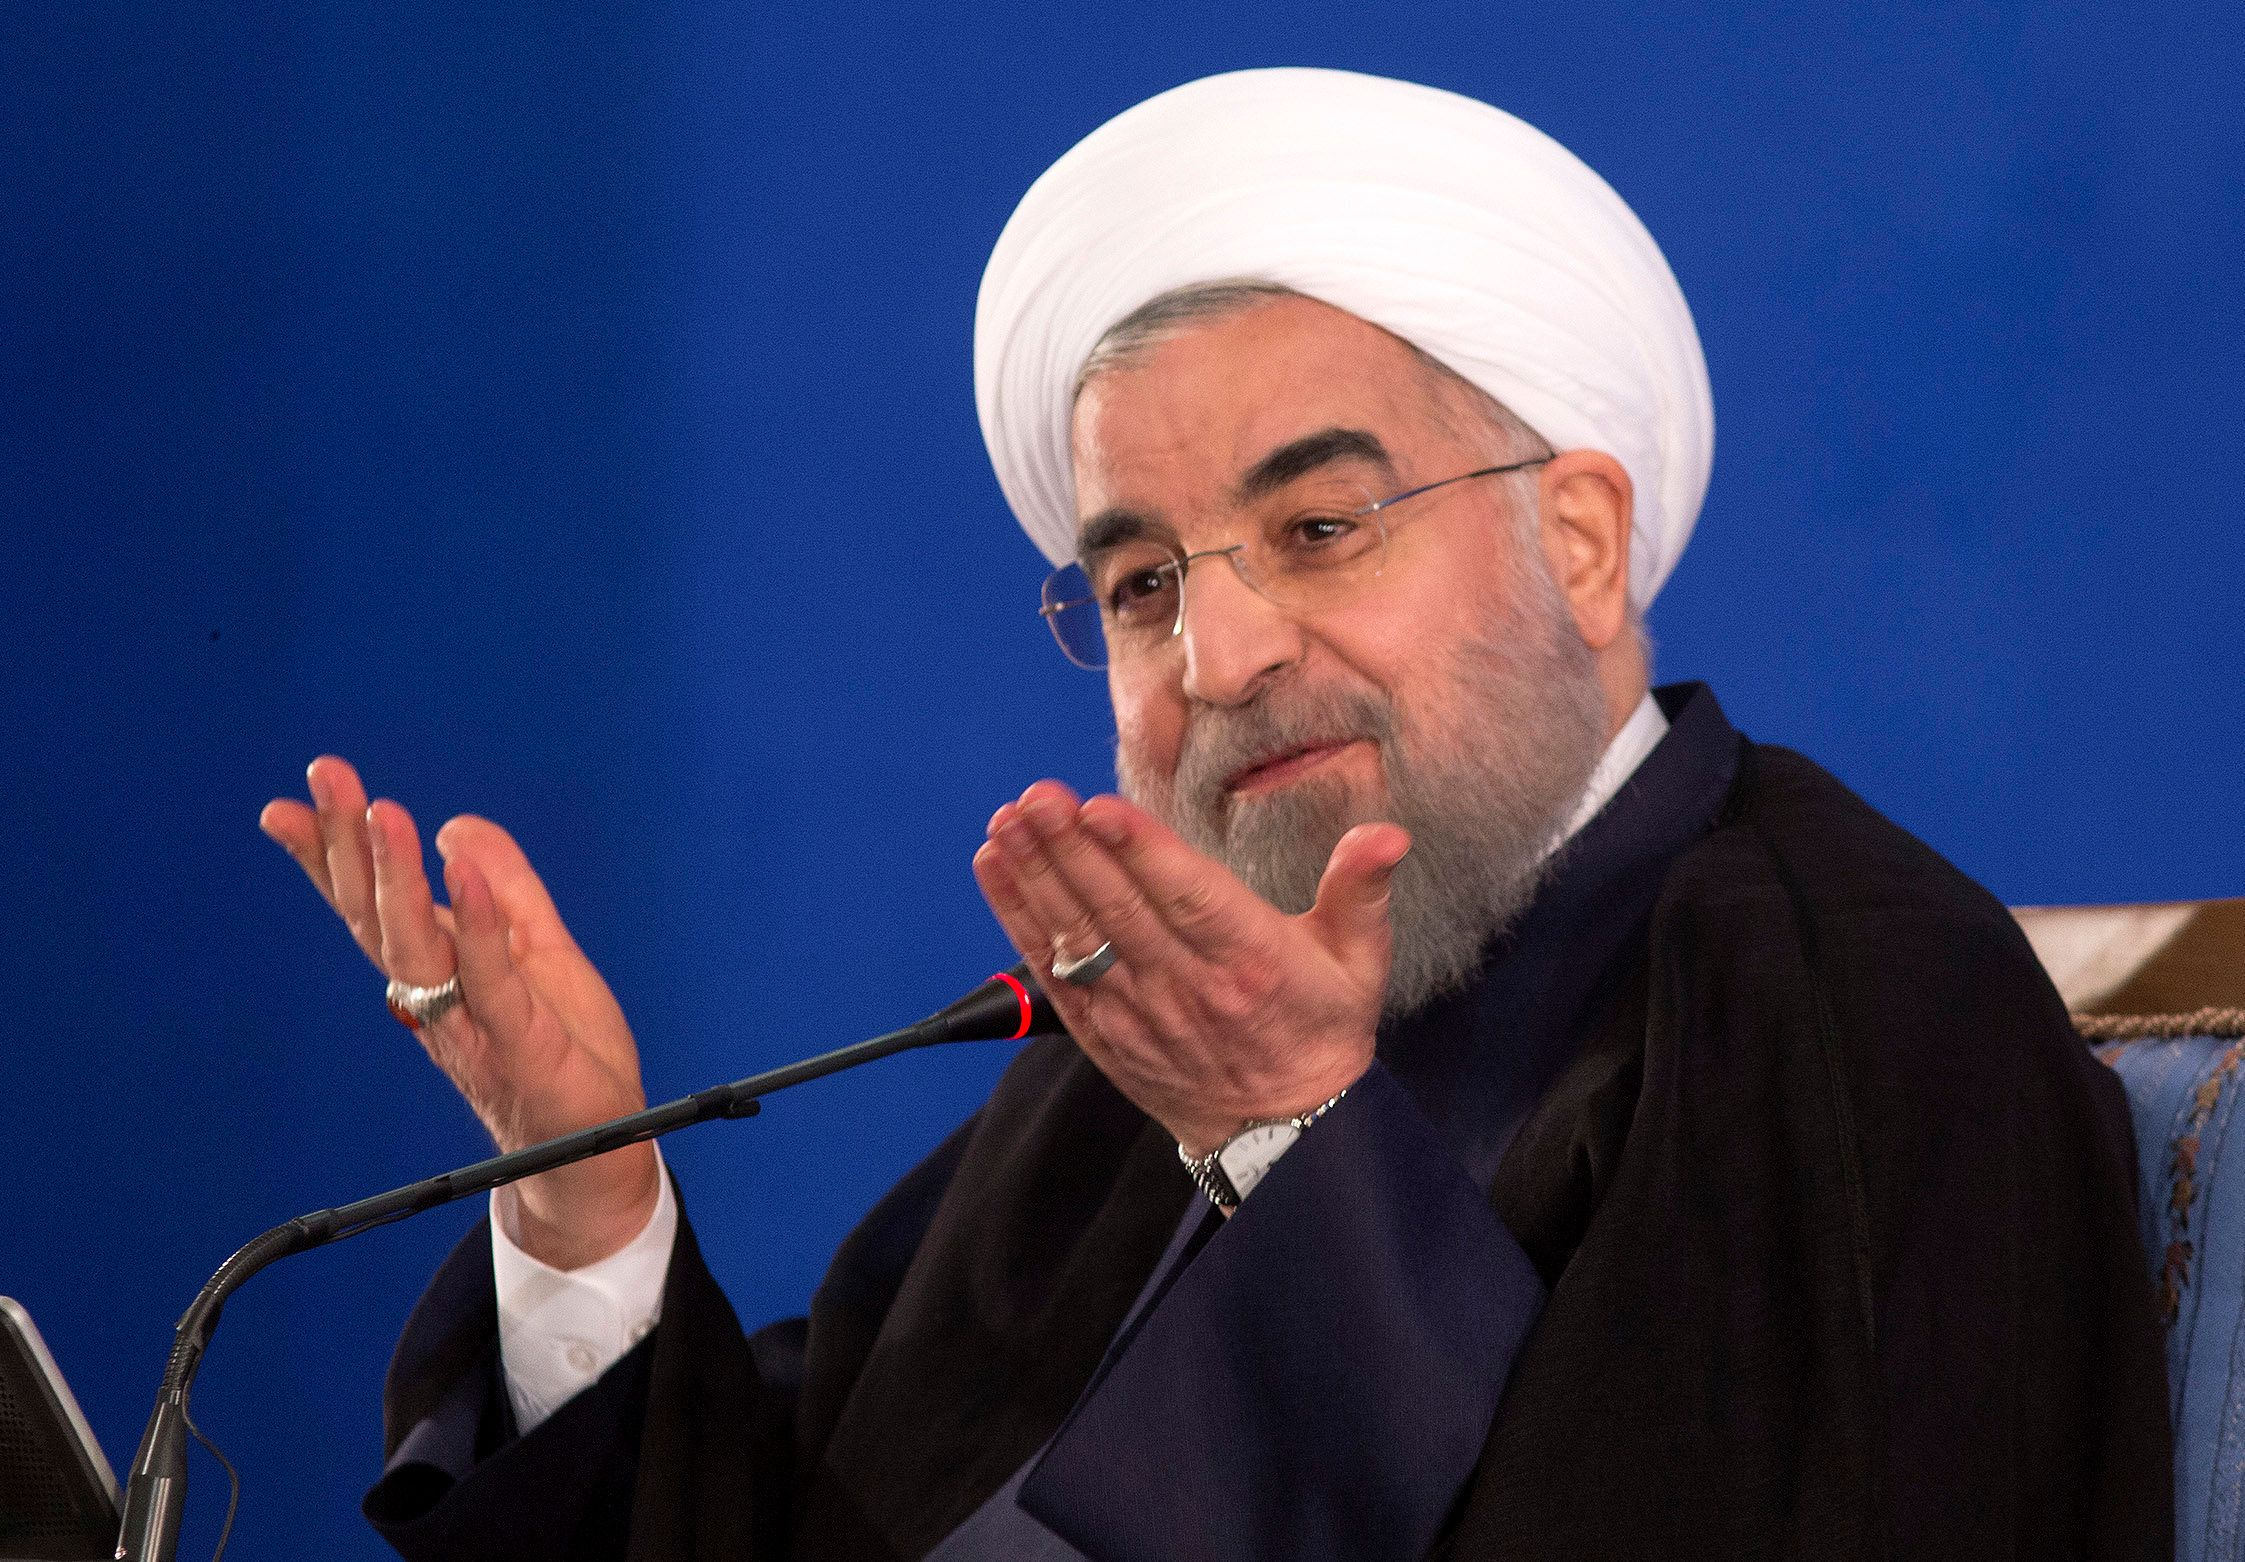 Responding to criticism of Iran from Trump, Rouhani said stability could not be achieved in the Mideast without Teh